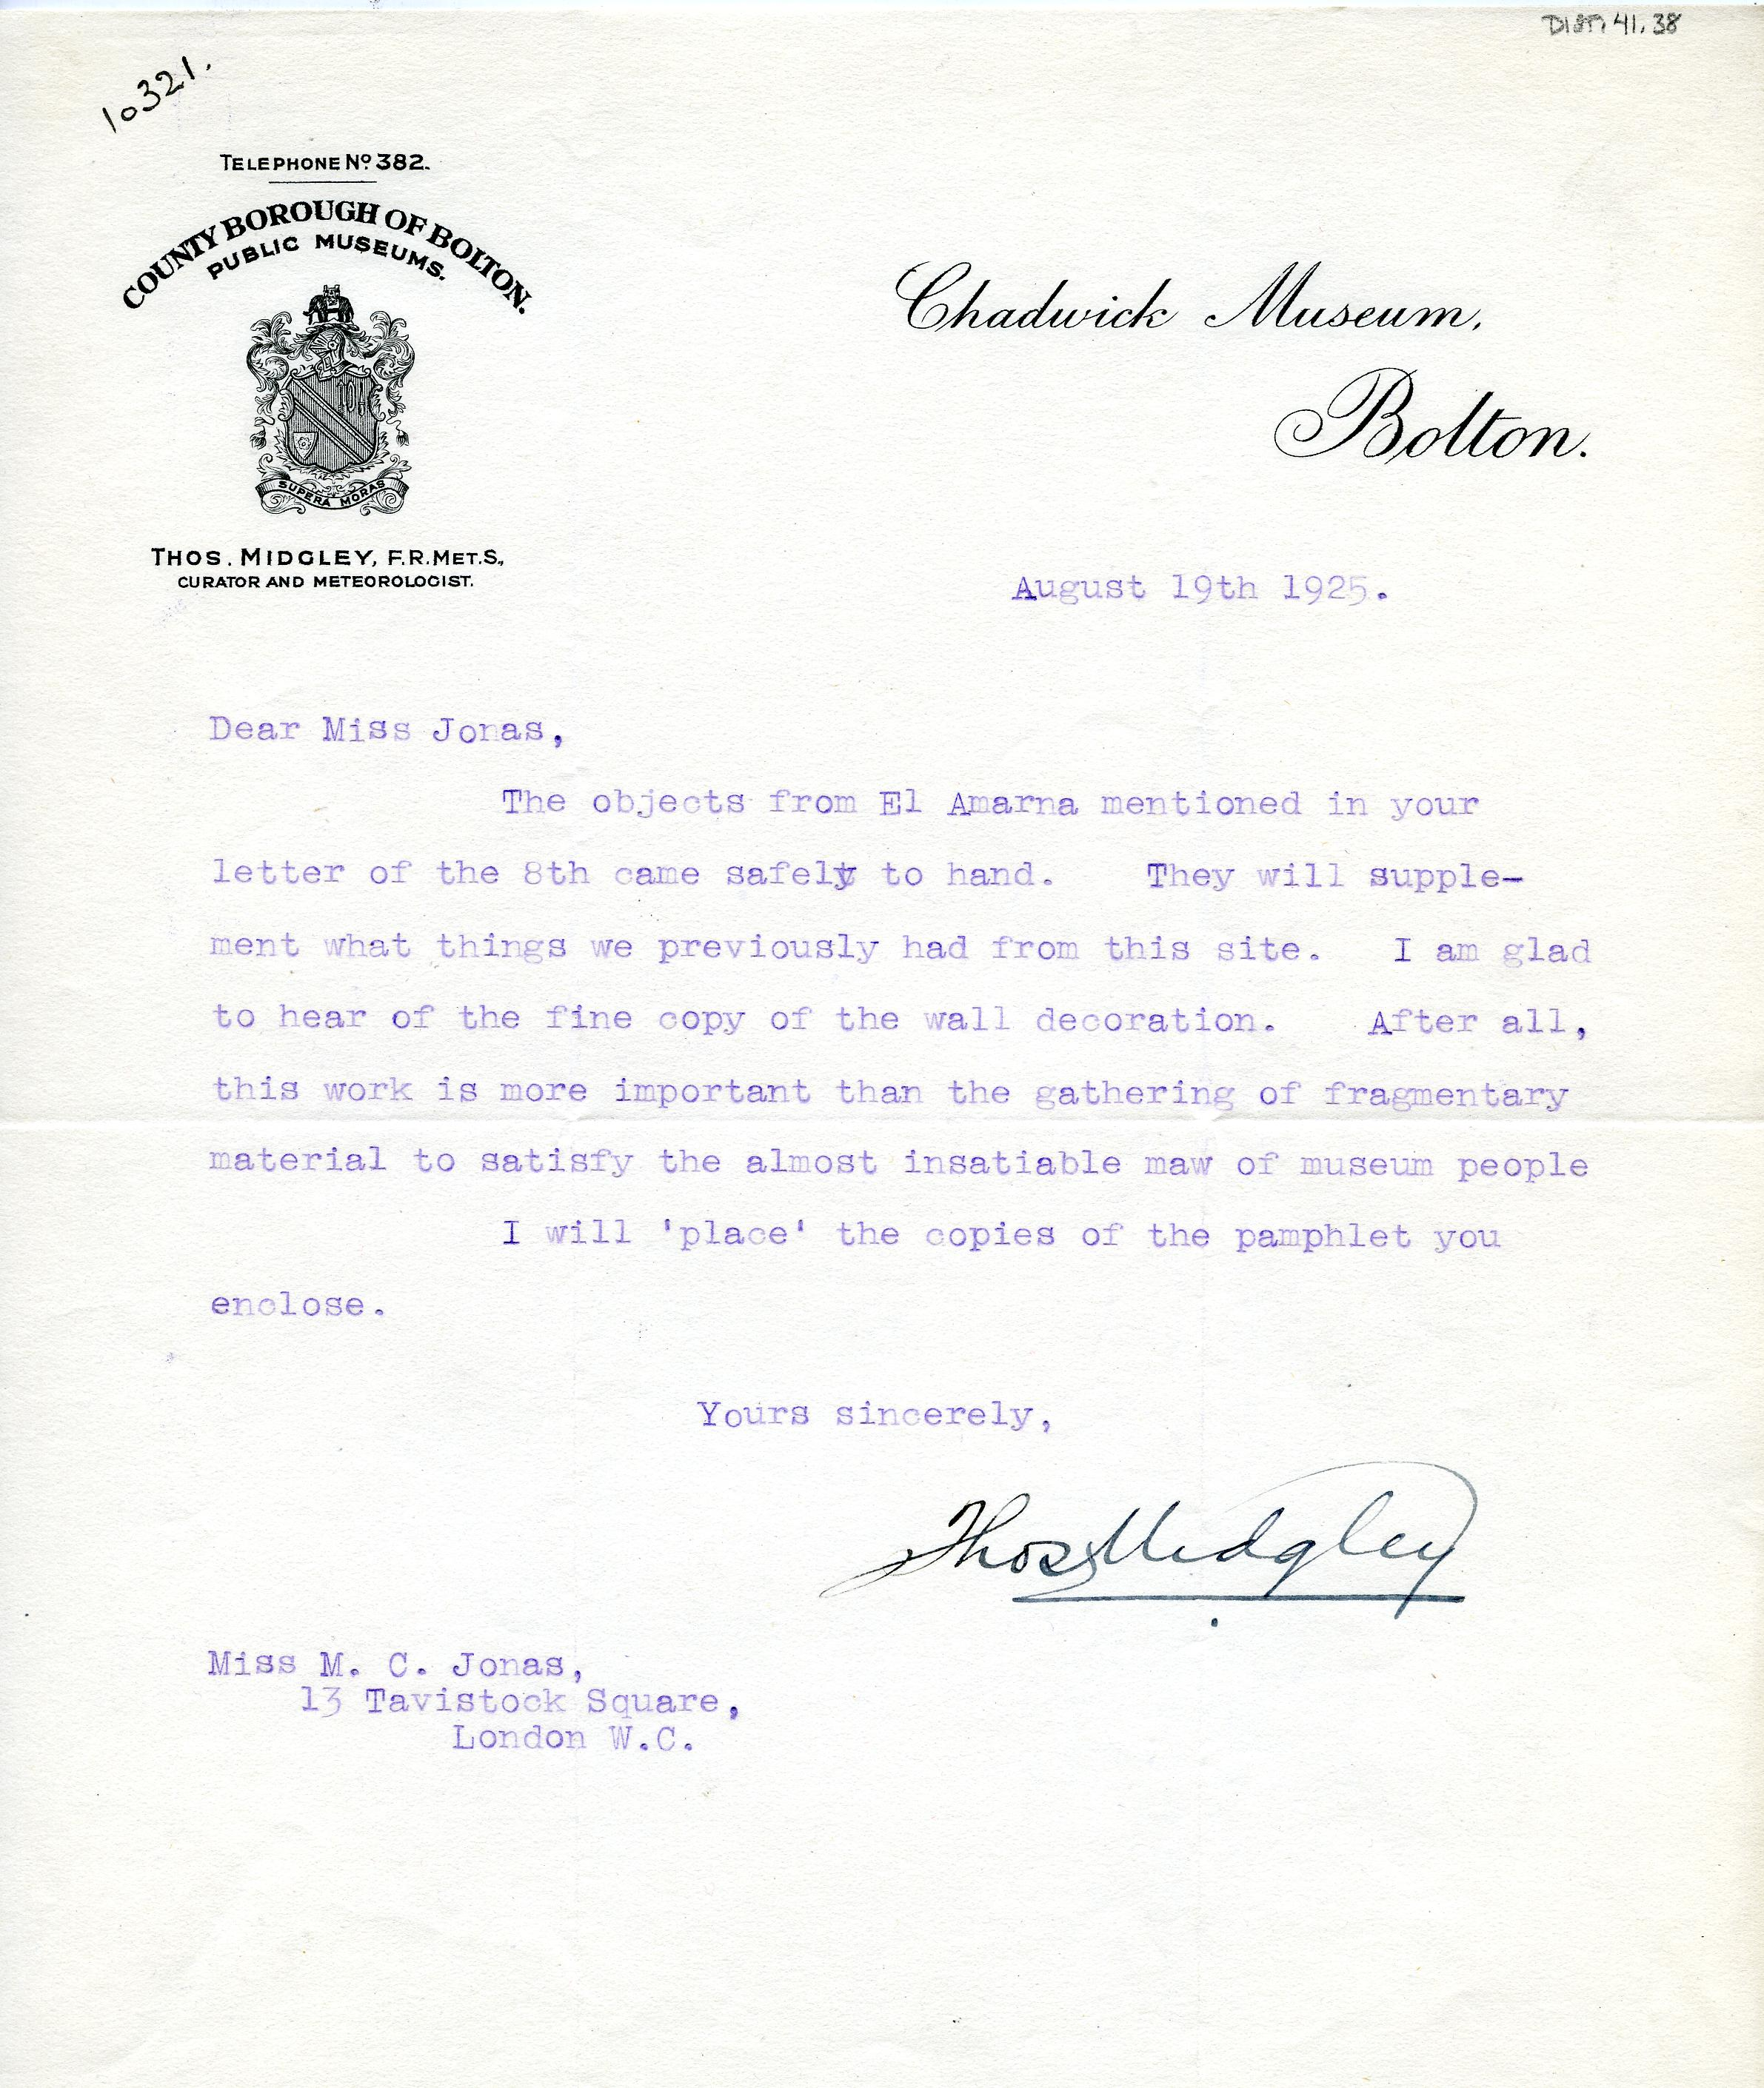 1922-76 Miscellaneous correspondence with museums DIST.41.38